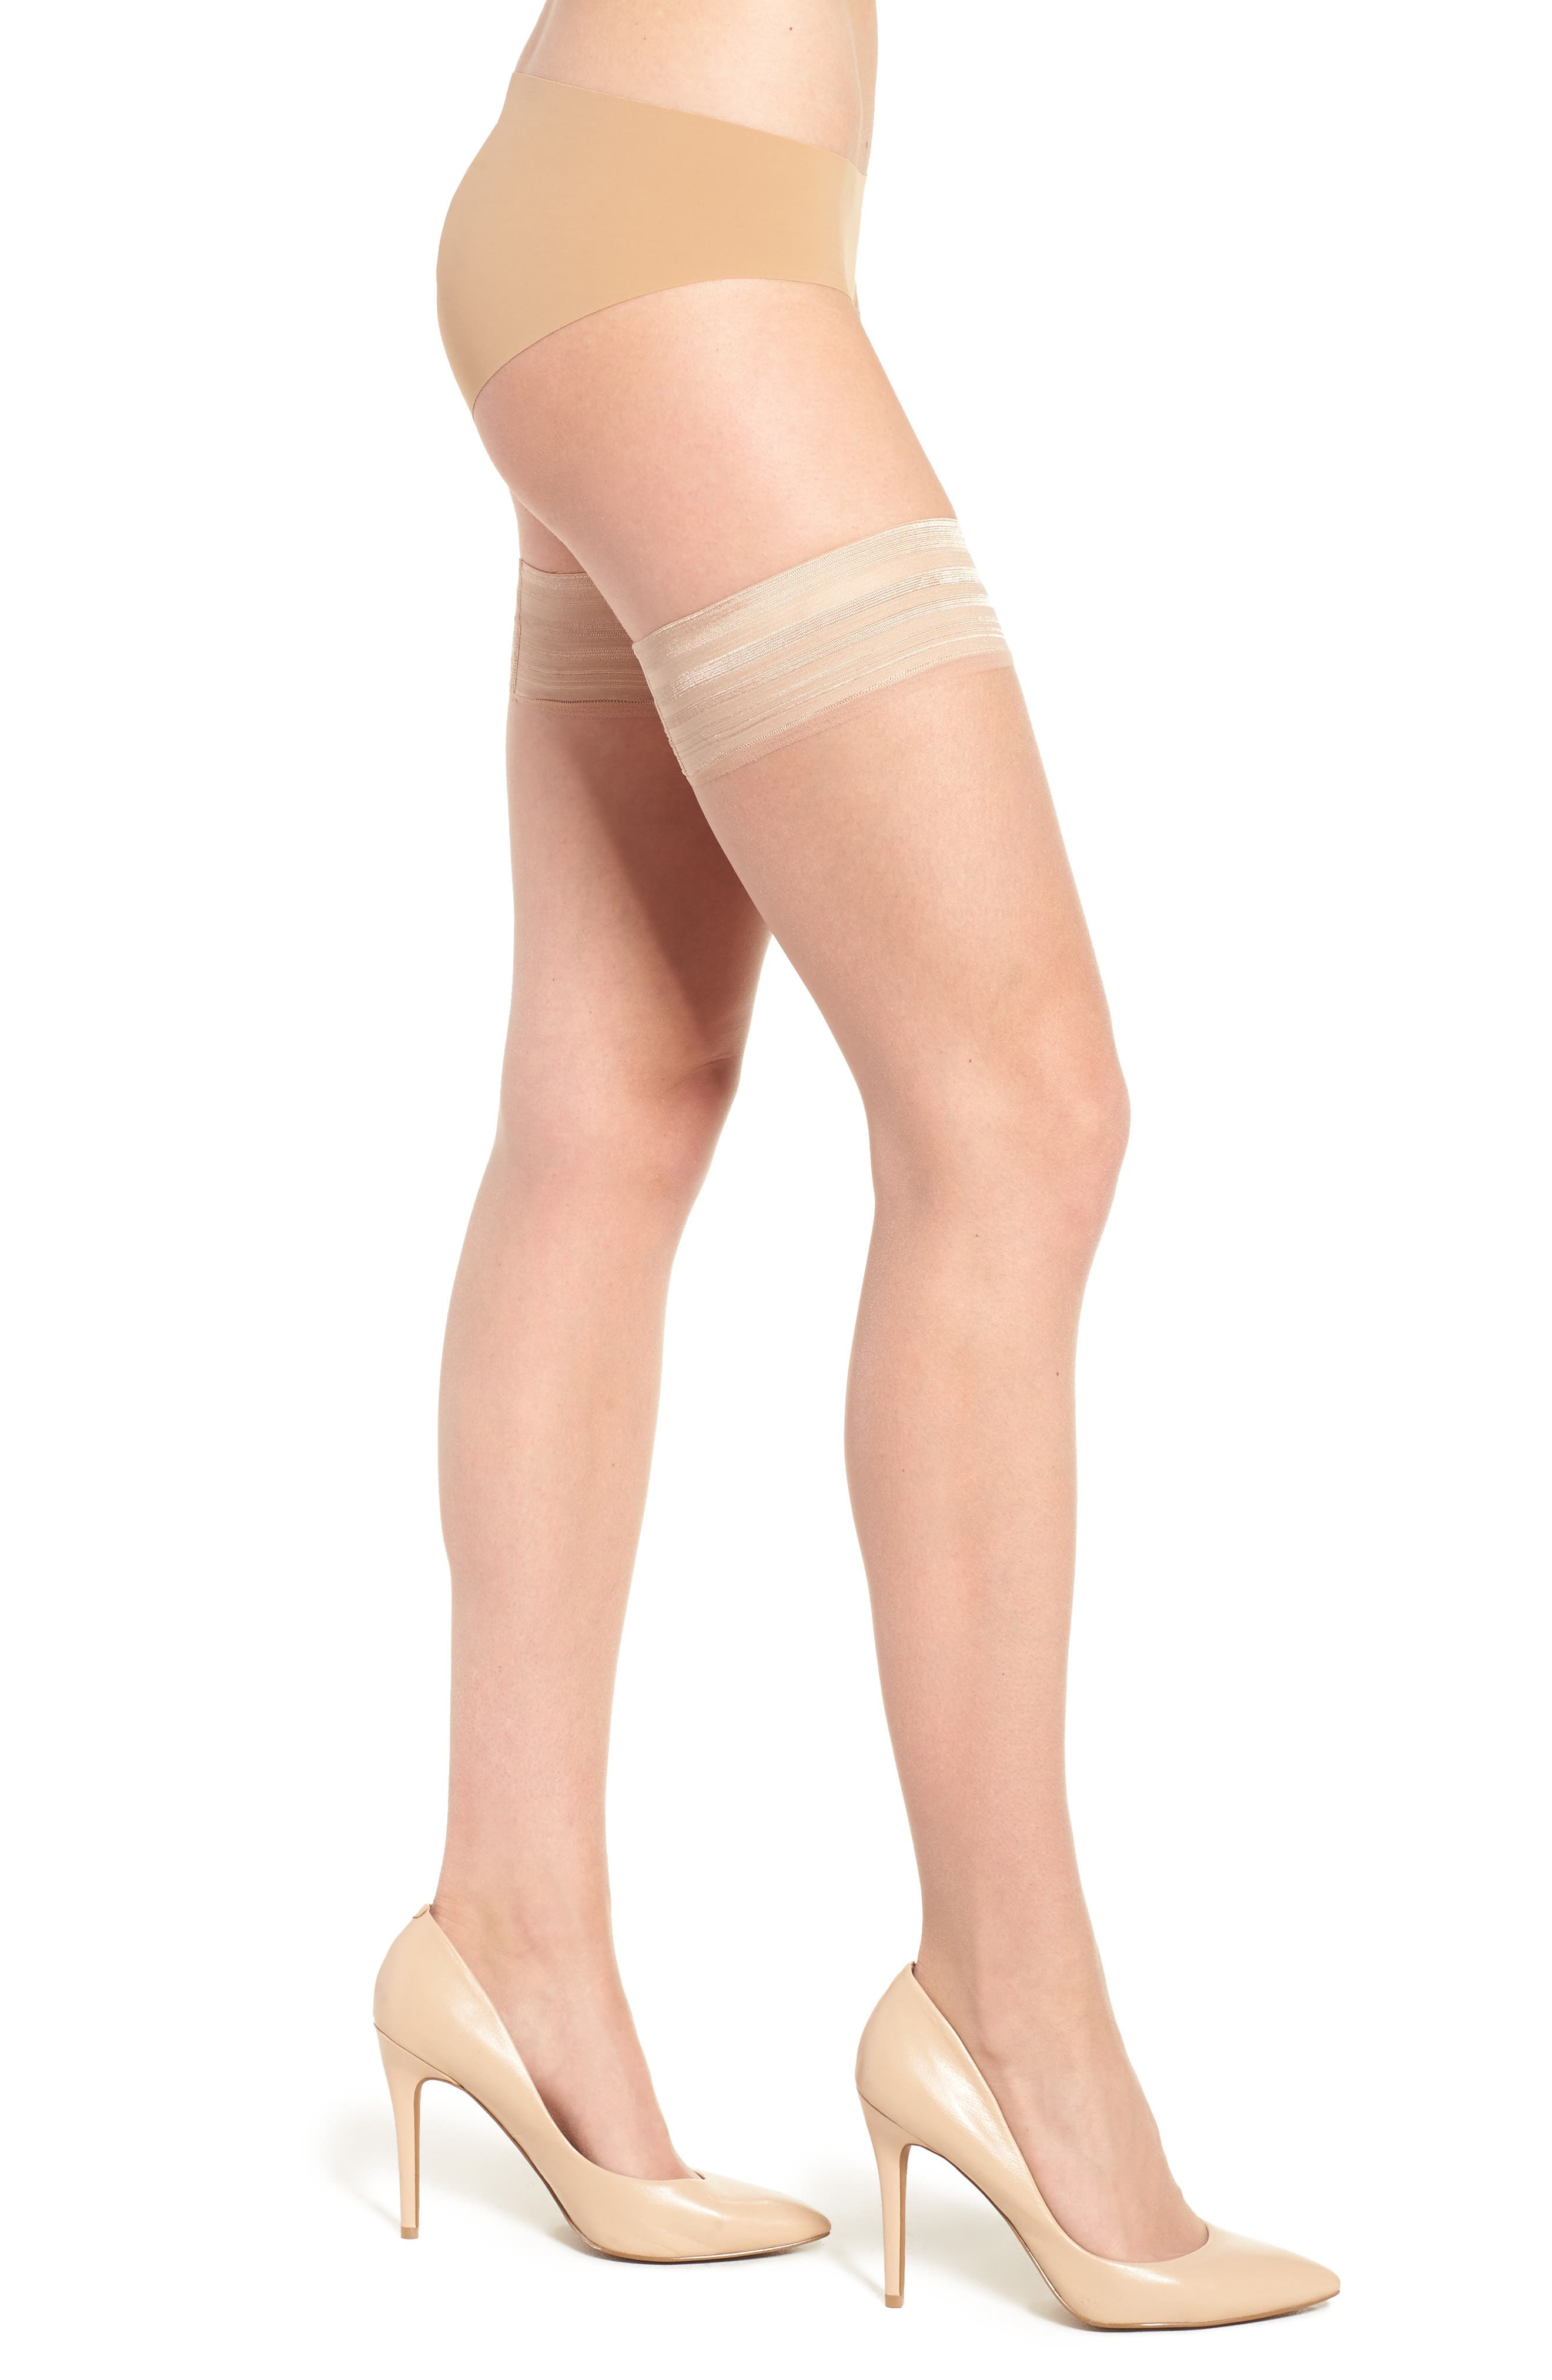 Donna Karan Beyond The Nudes Stay-Up Stockings,                             Main thumbnail 2, color,